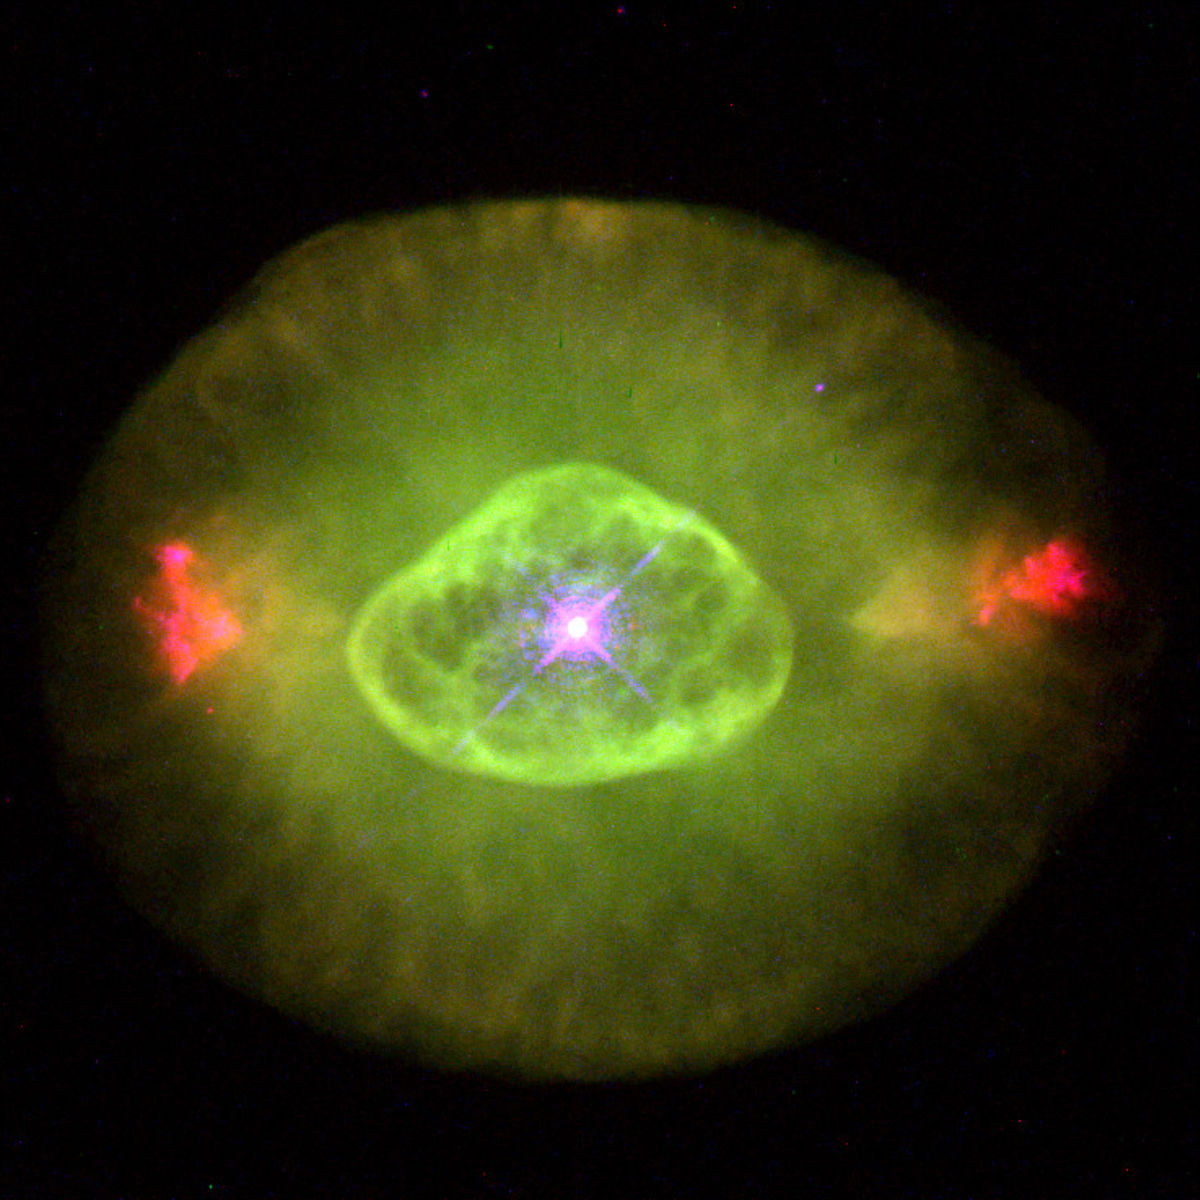 NGC 6826 is a planetary nebula, a dying star whose light is causing previously expelled gas around it to glow.